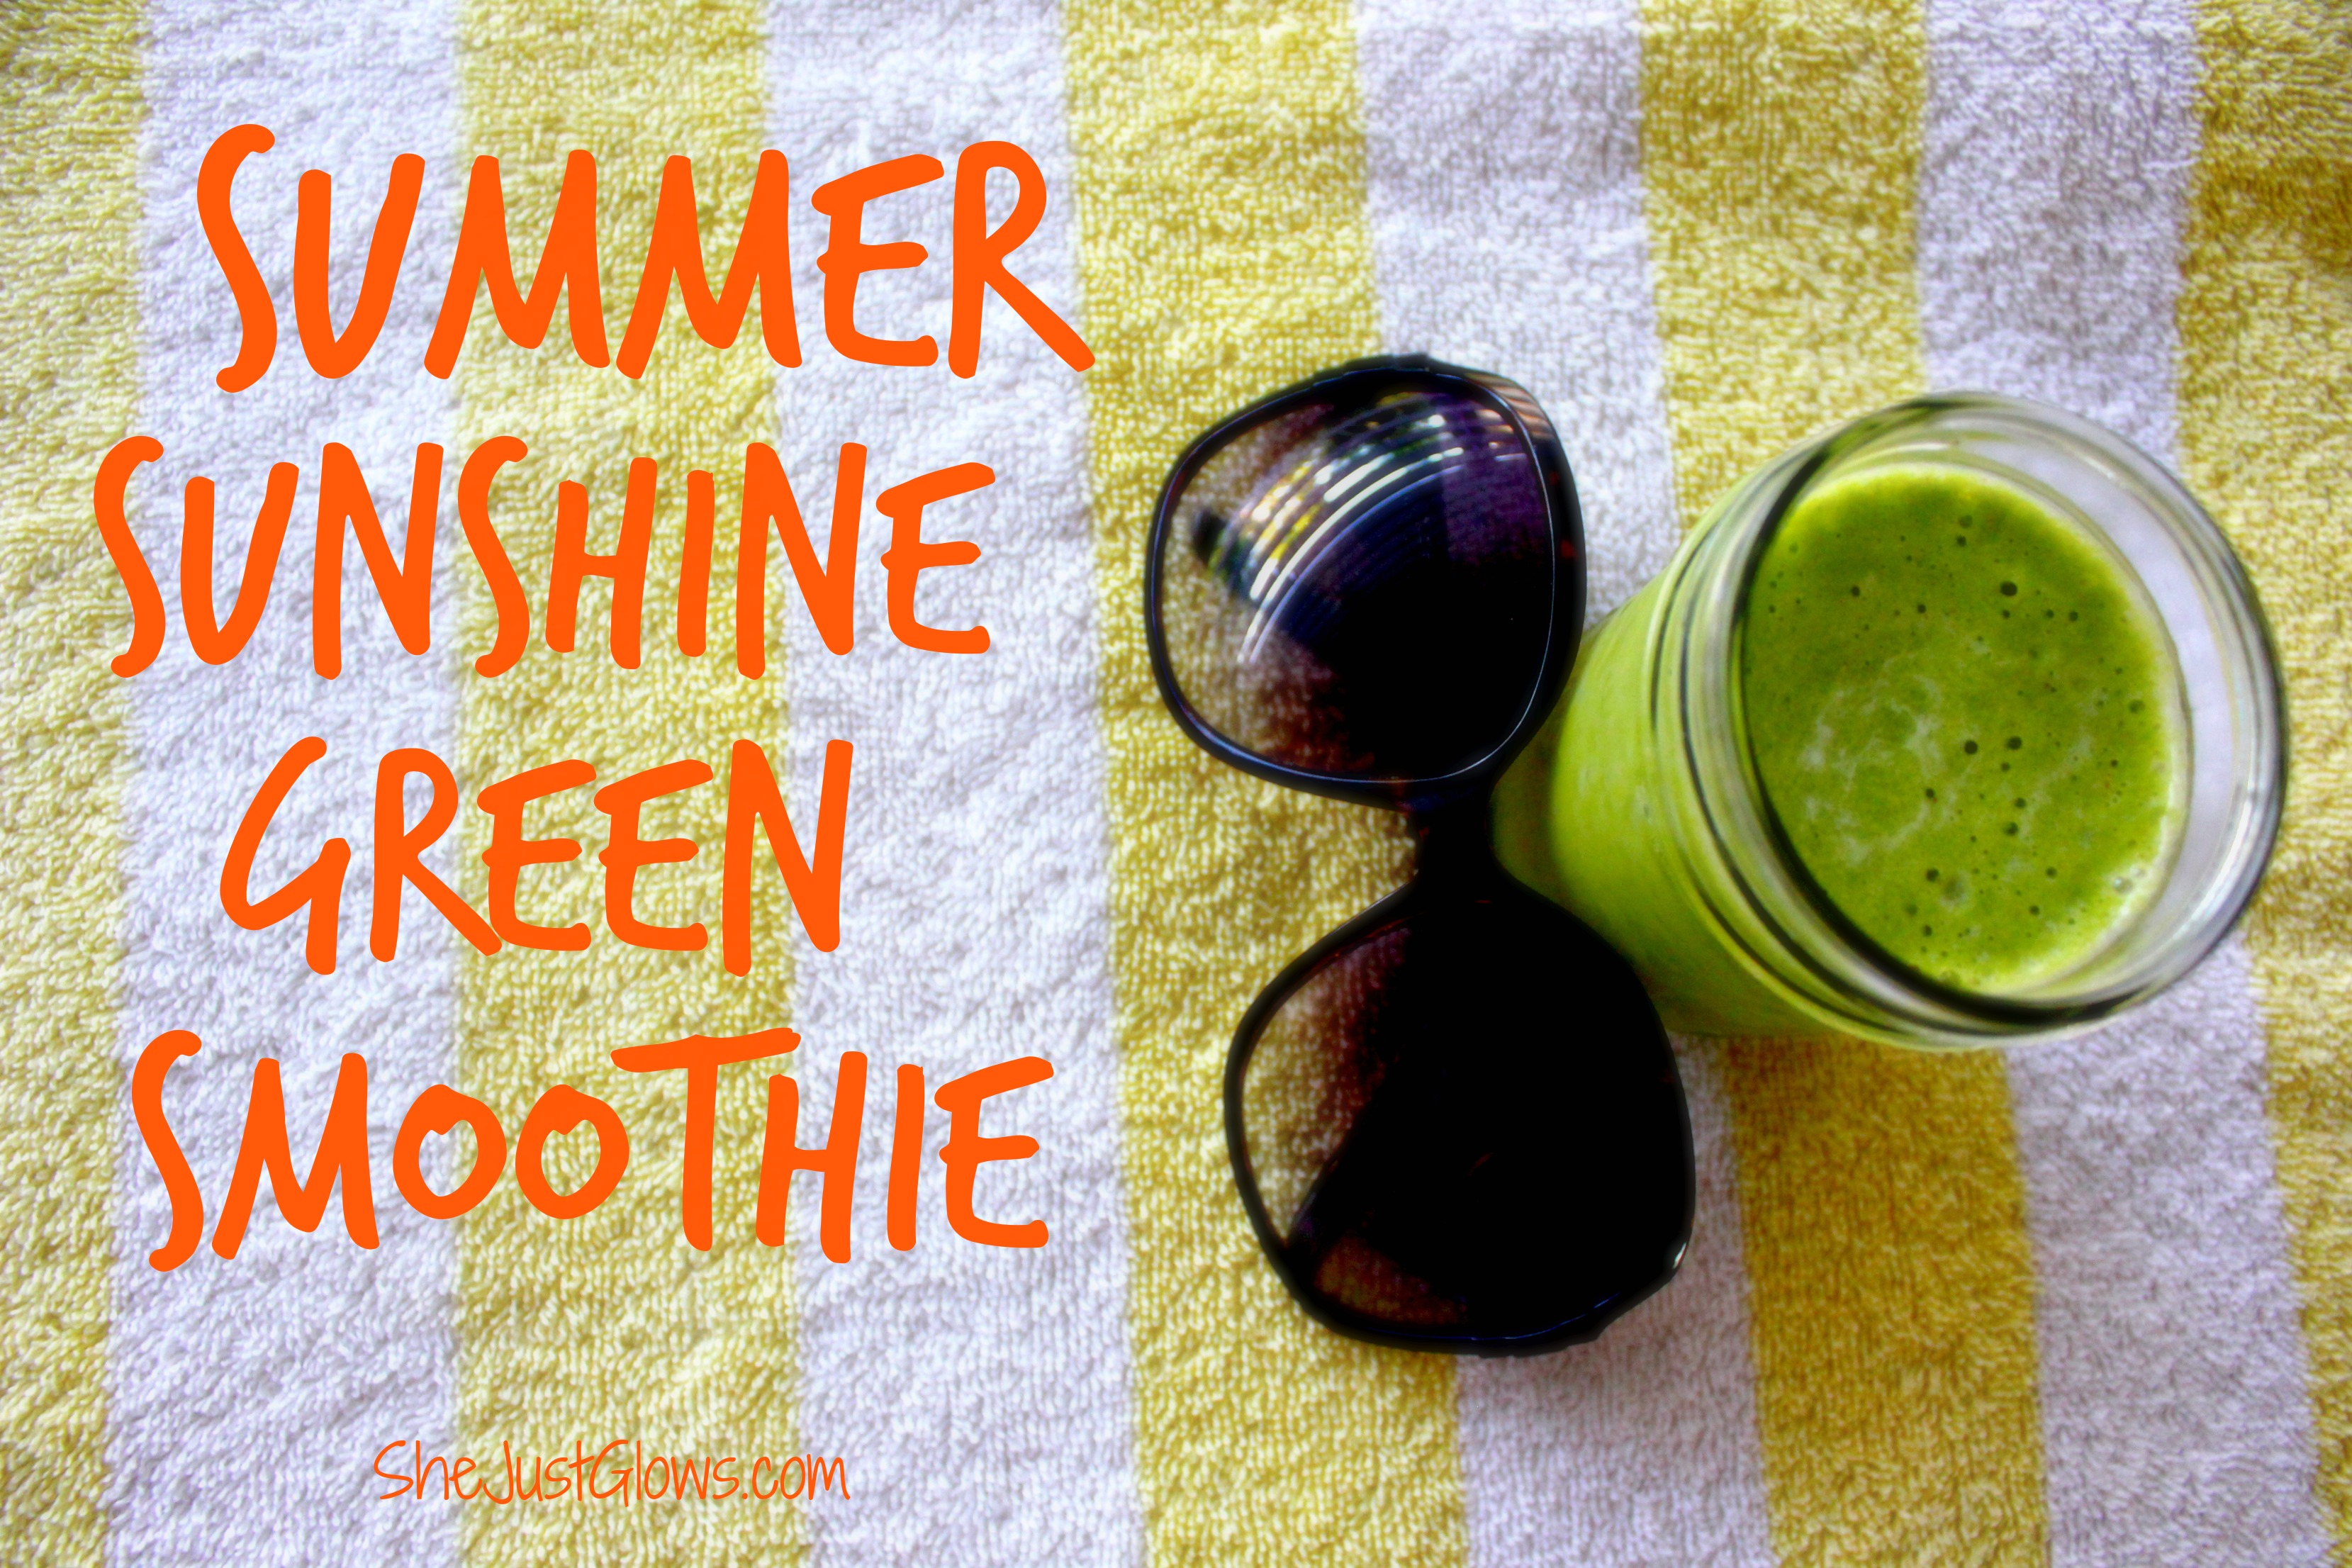 Summer Sunshine Green Smoothie SheJustGlows.com